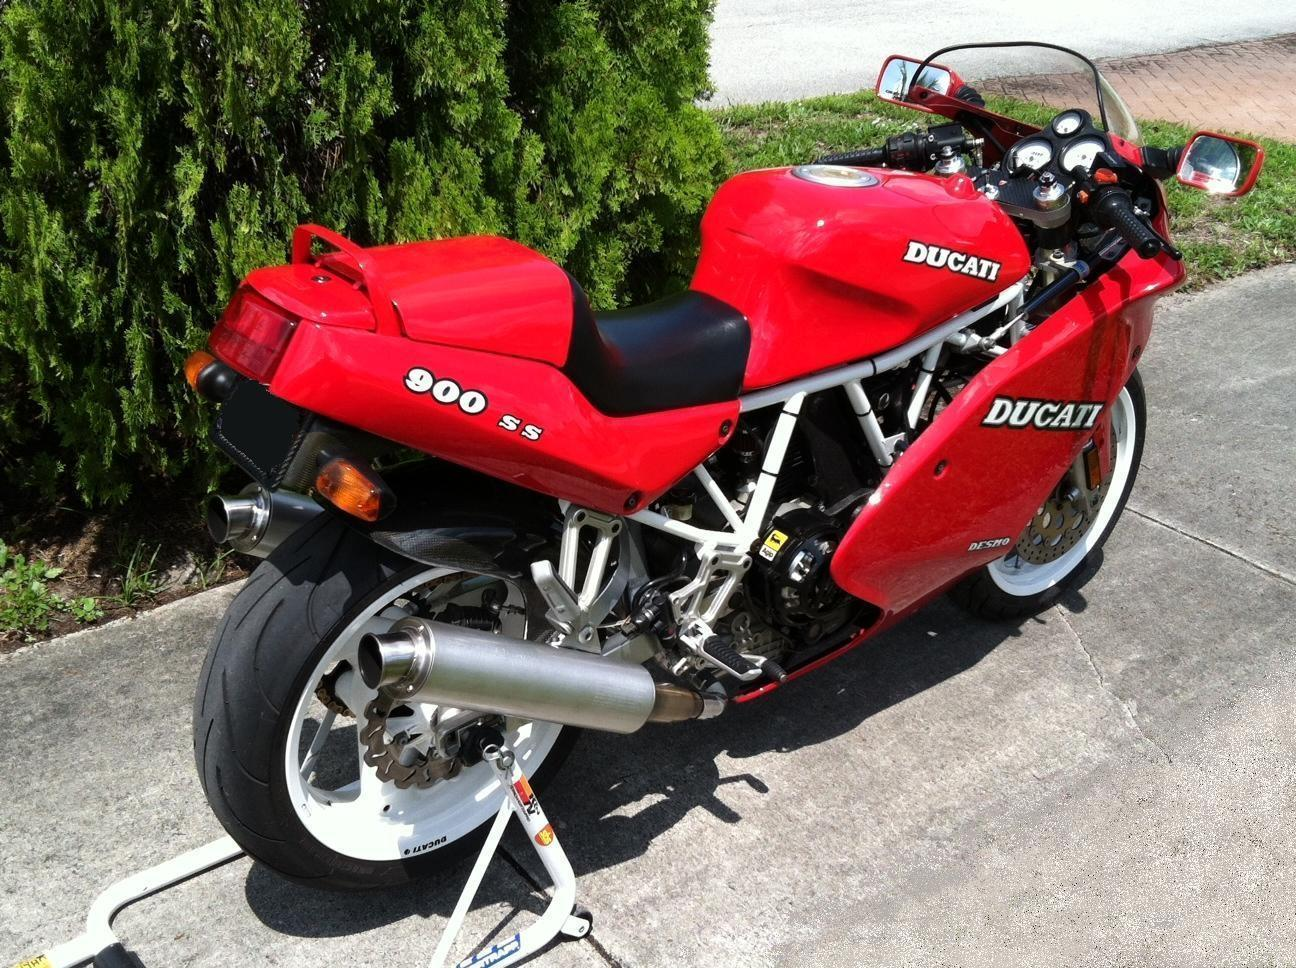 Ducati 900 Superlight images #164884